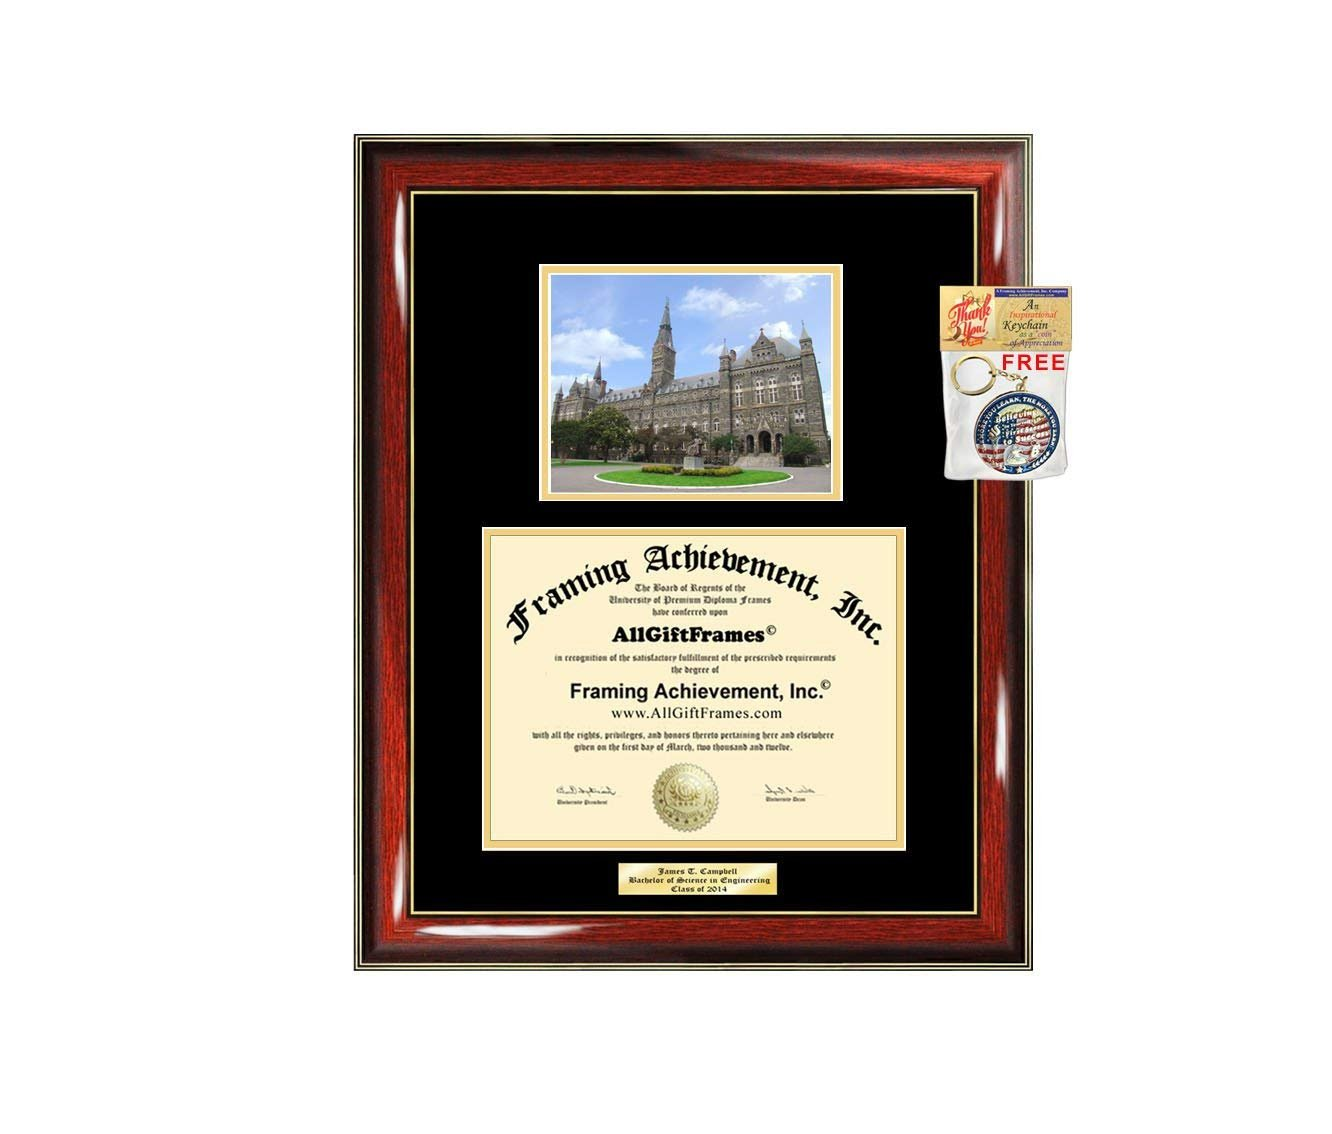 diploma frame georgetown university graduation gift idea engraved pict